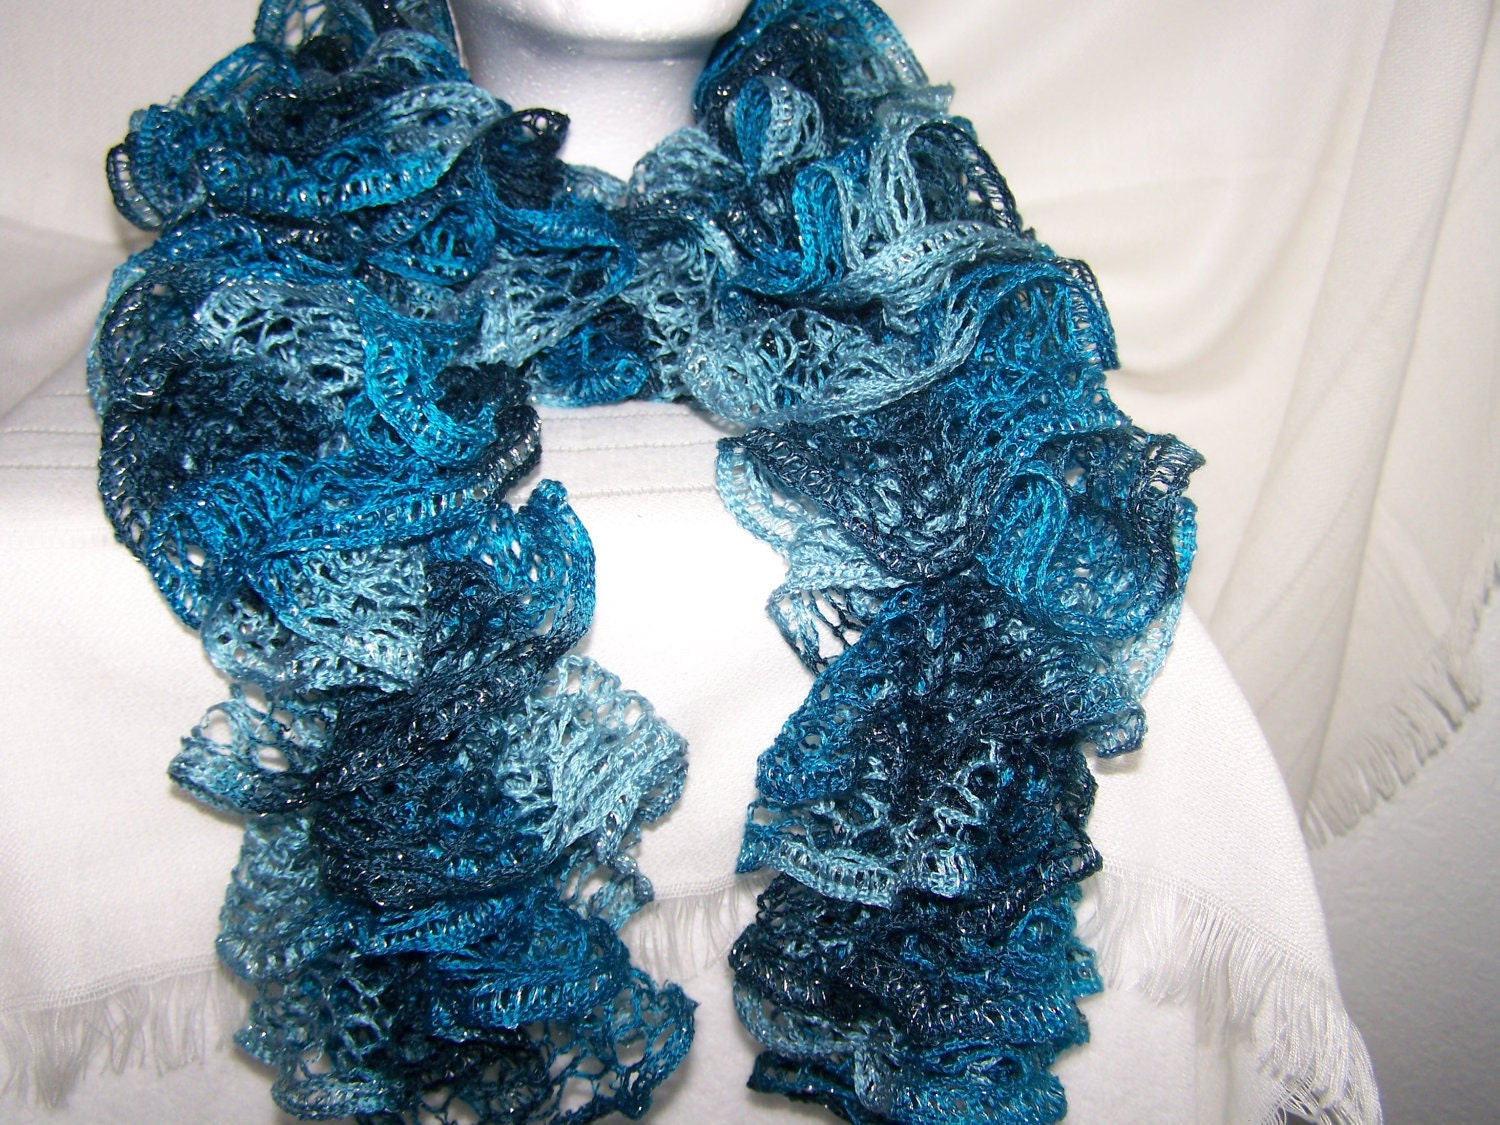 Crochet Scarf Pattern With Sashay Yarn : New yarn Sashay scarf special for New Years. Multicolors of